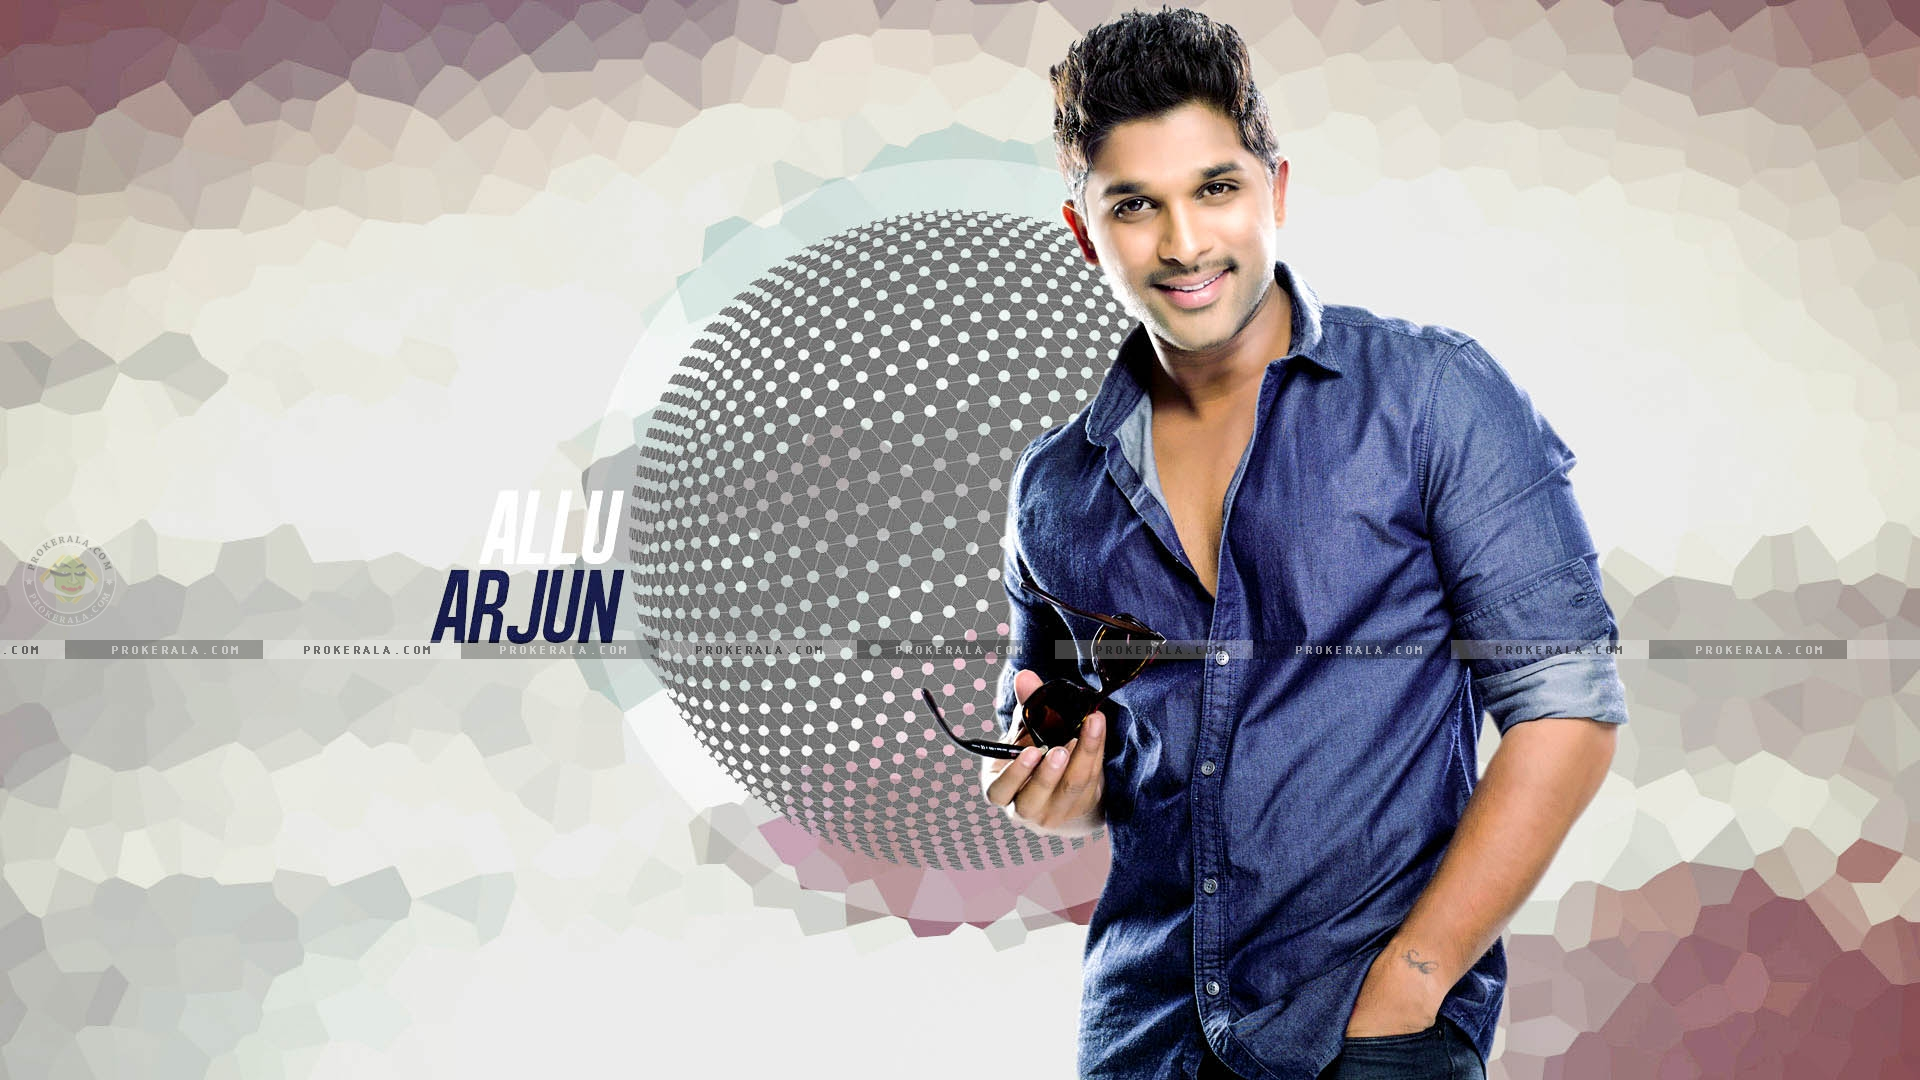 allu arjun hd wallpaper for desktop and mobile